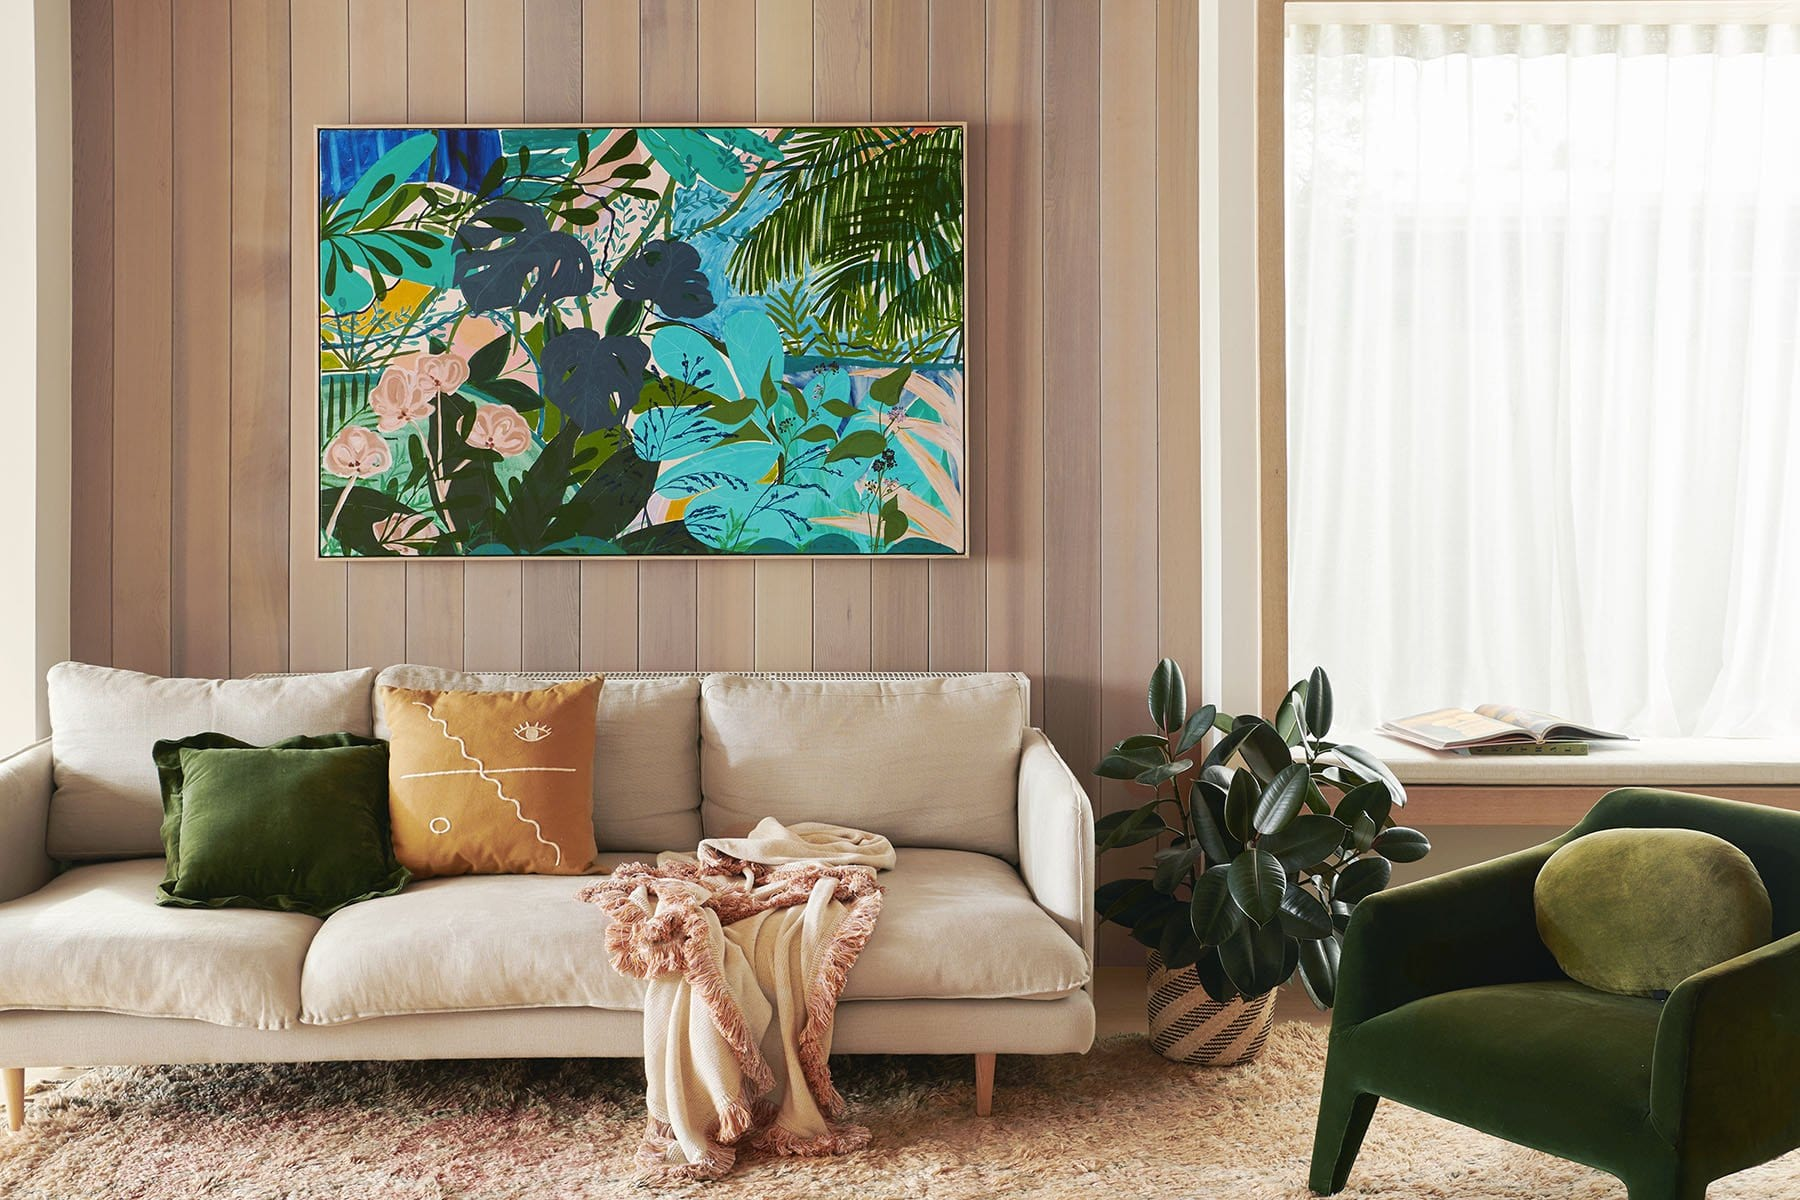 Crave The Brave - Print-Prints-Kate Mayes-Greenhouse Interiors